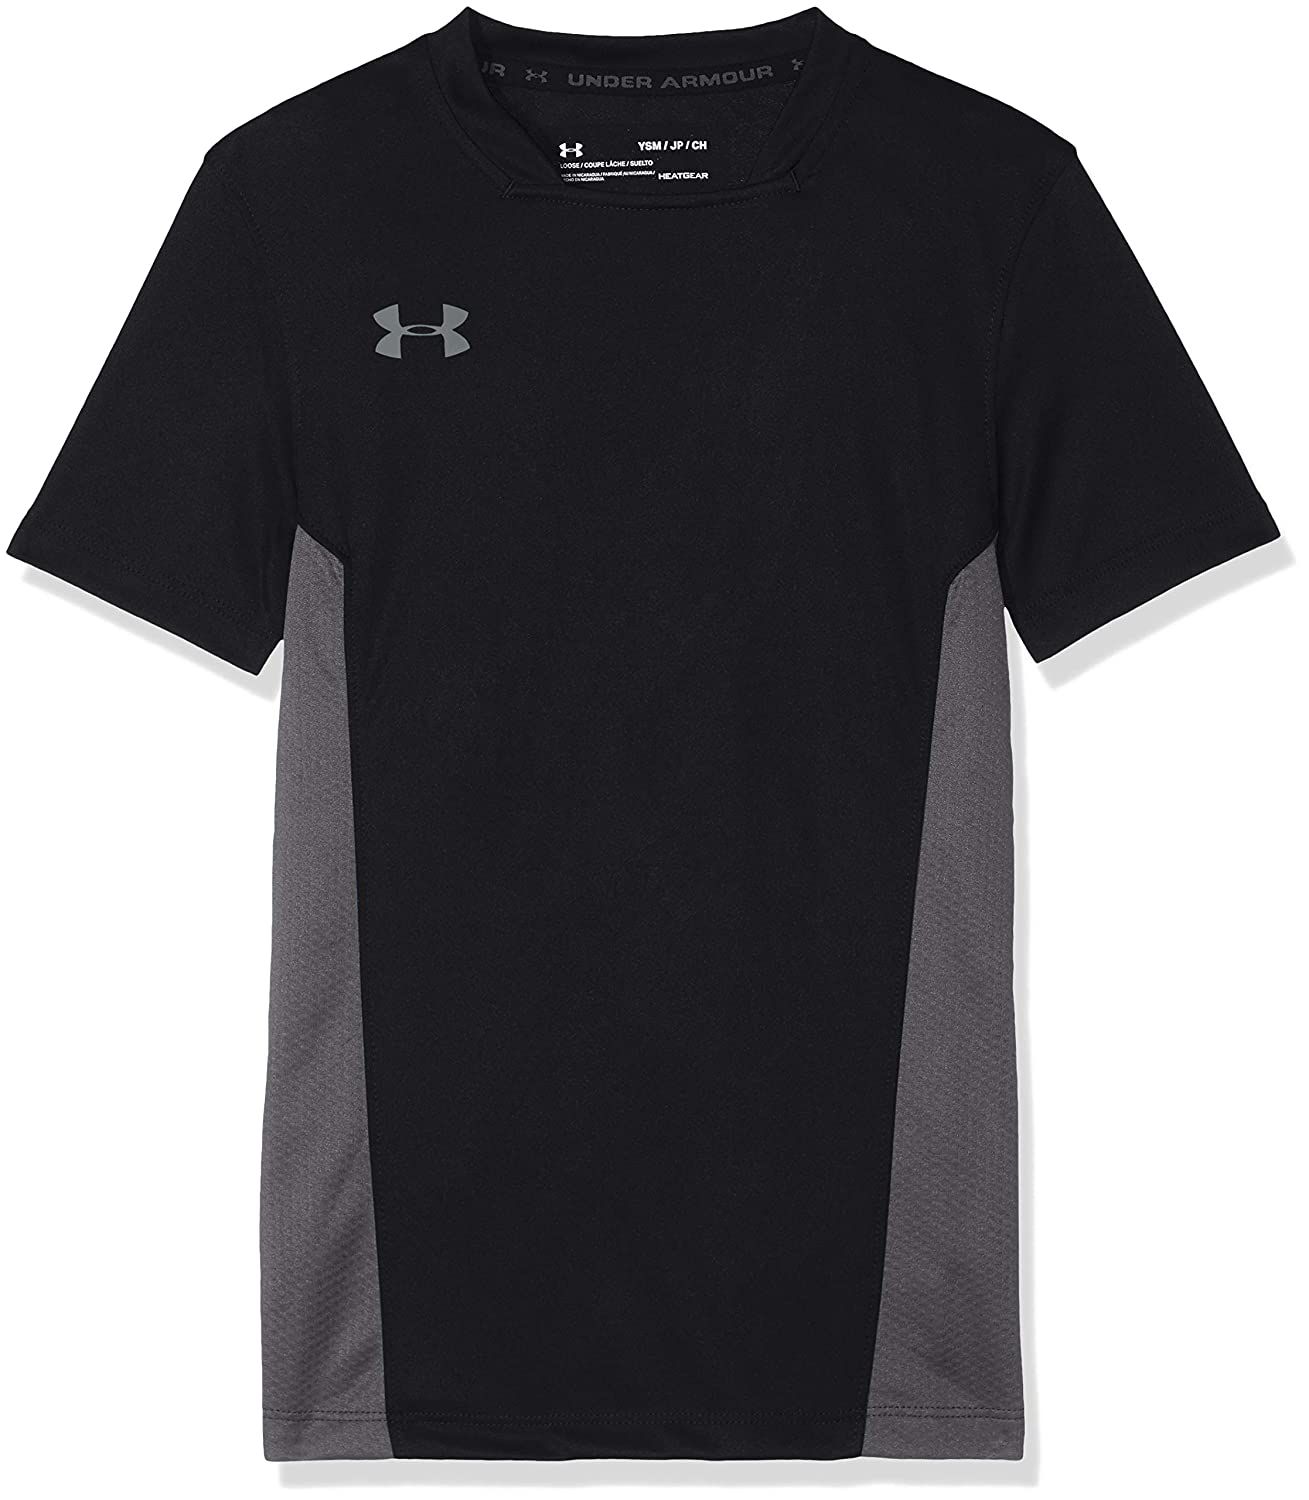 Under Armour Boys' Youth Challenger II Training Shirt Under Armour Apparel 1314639